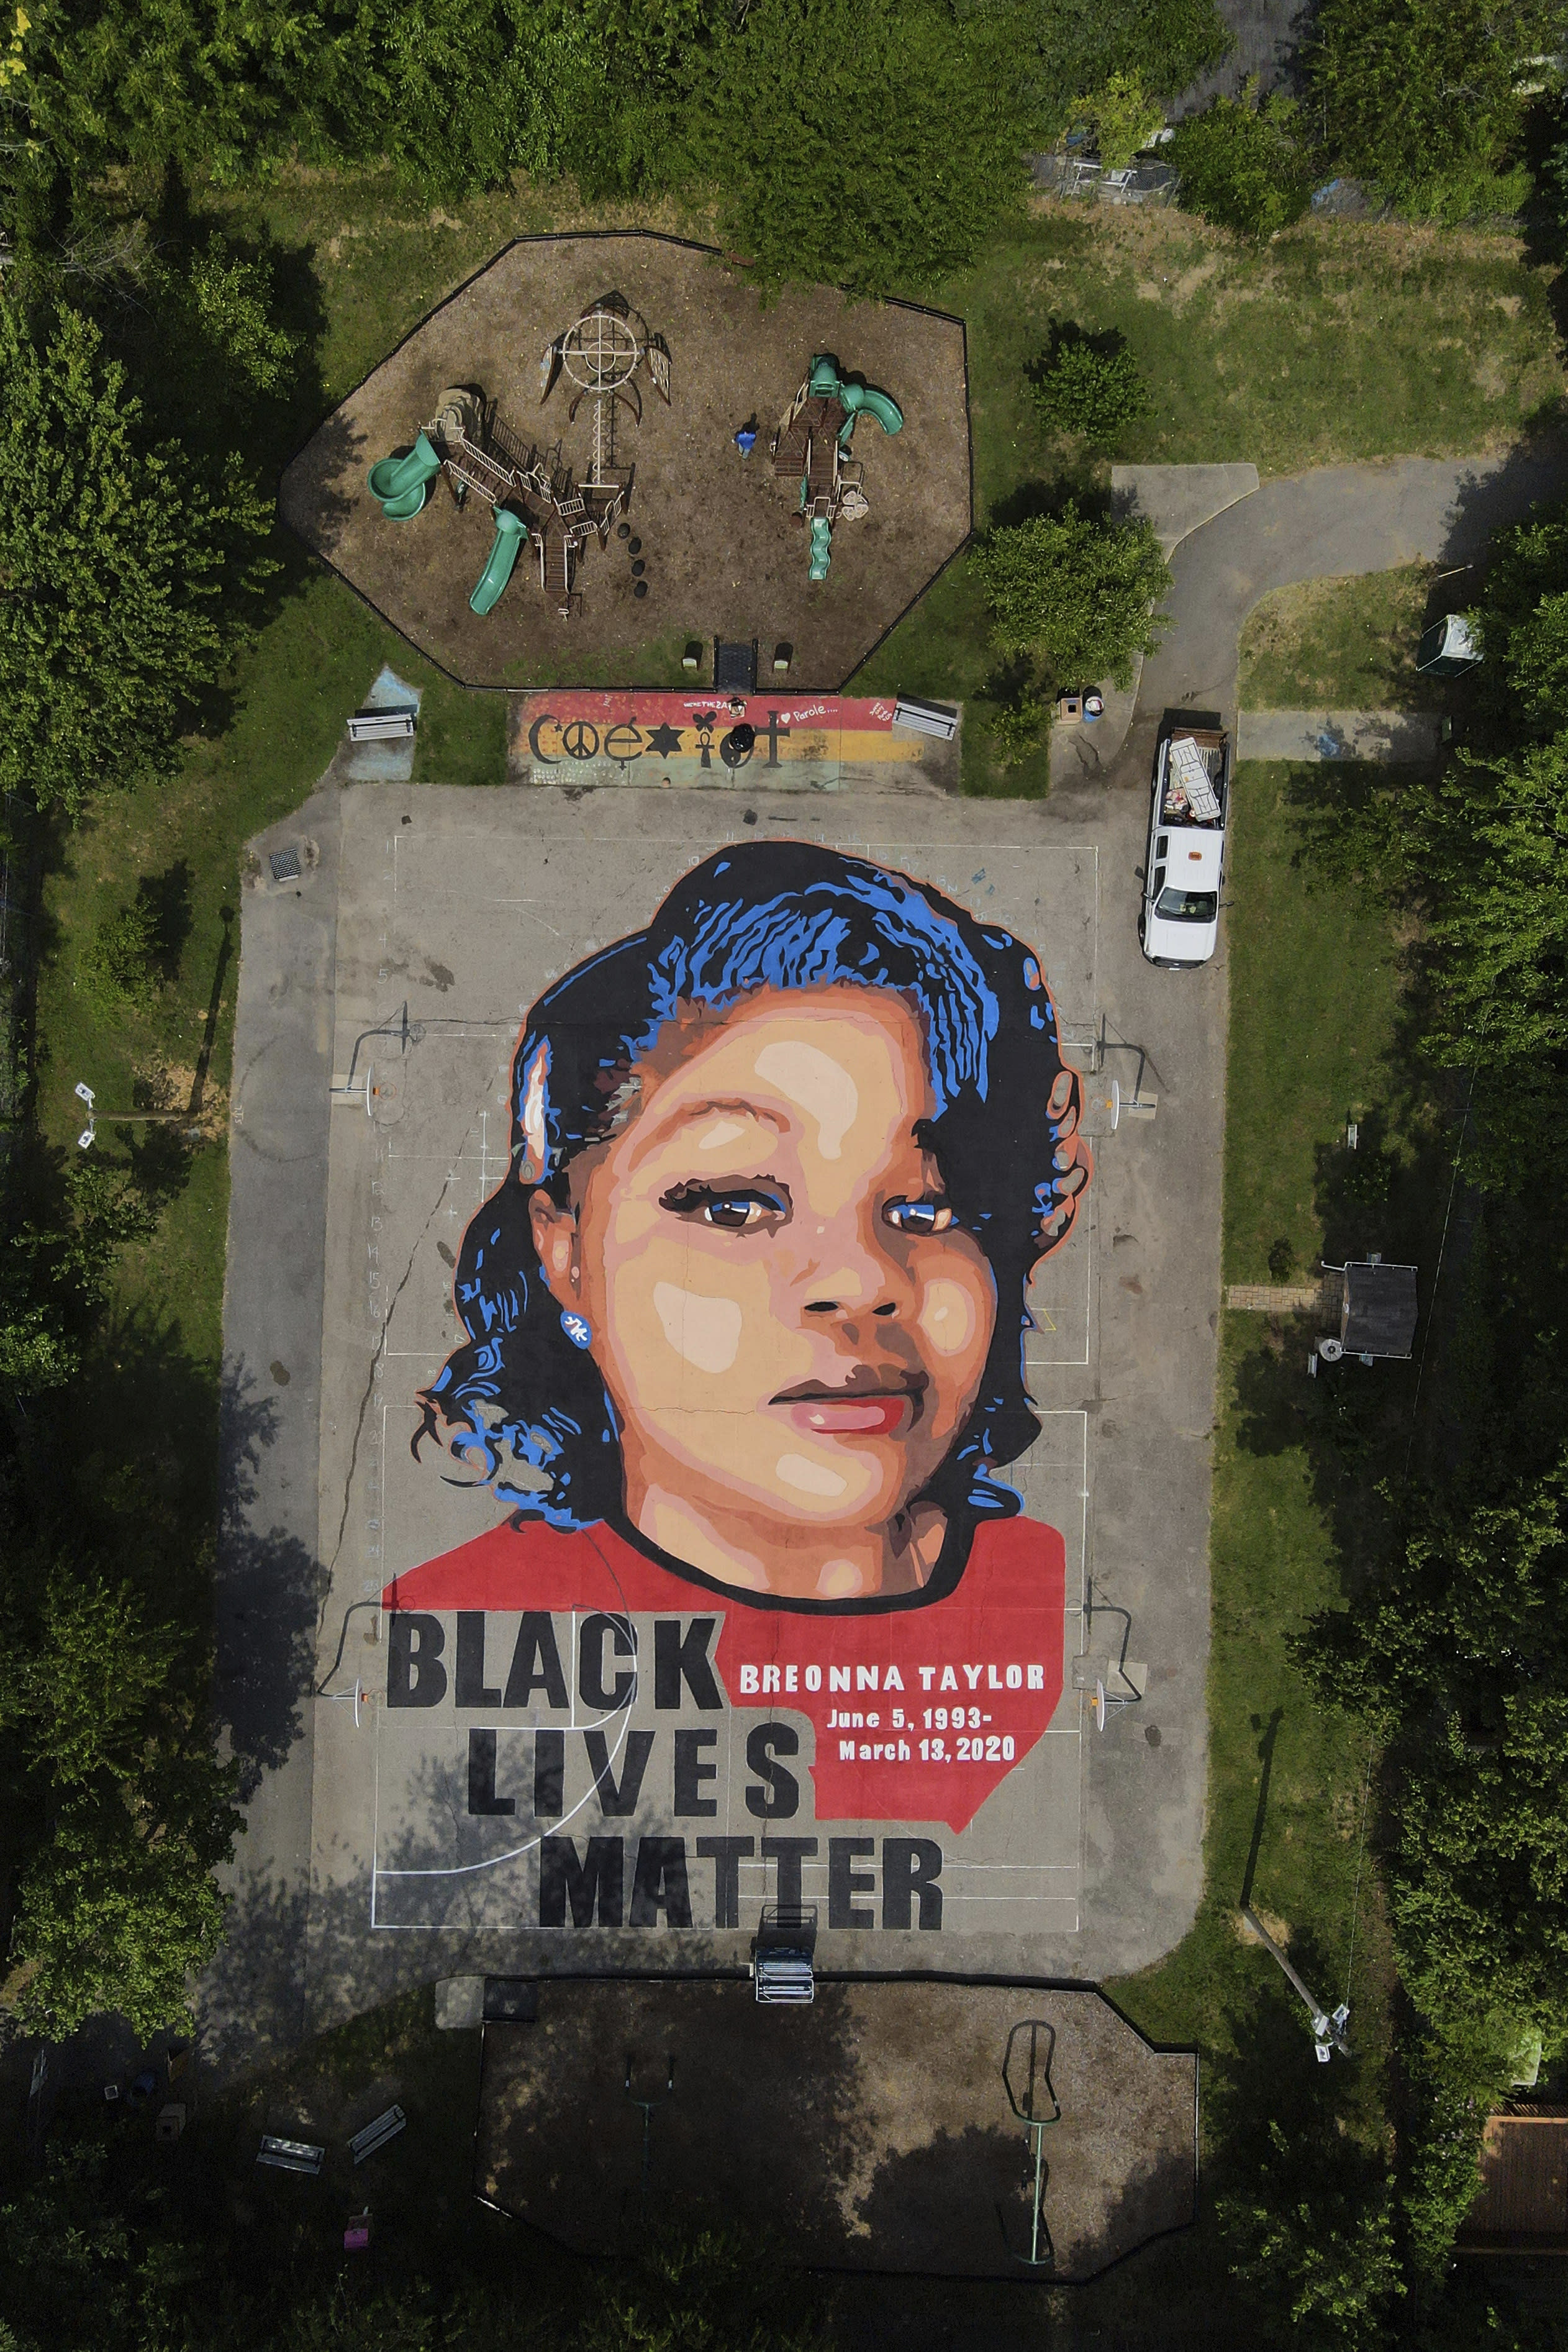 A ground mural depicting a portrait of Breonna Taylor is seen at Chambers Park, Monday, July 6, 2020, in Annapolis, Md. The mural honors Taylor, a 26-year old Black woman who was fatally shot by police in her Louisville, Ky., apartment. The artwork was a team effort by the Banneker-Douglass Museum, the Maryland Commission on African American History and Culture, and Future History Now, a youth organization that focuses on mural projects. (AP Photo/Julio Cortez)